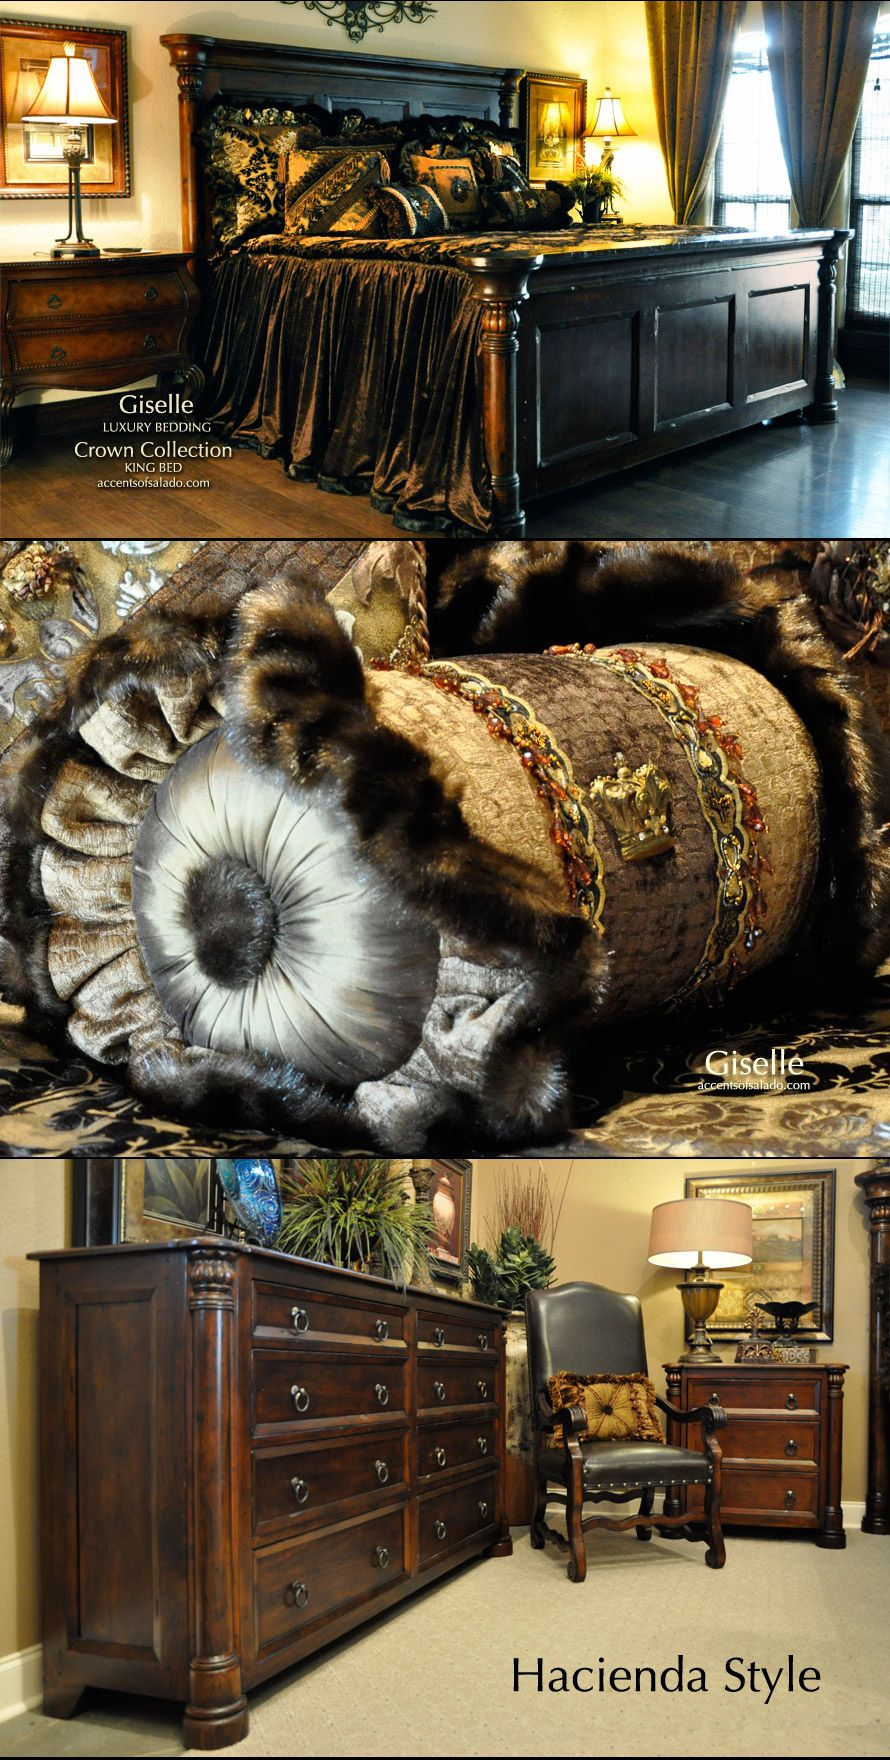 Old World Style Bedroom Furniture Crown Hacienda Bedroom Furniture And Giselle Luxury Bedding At